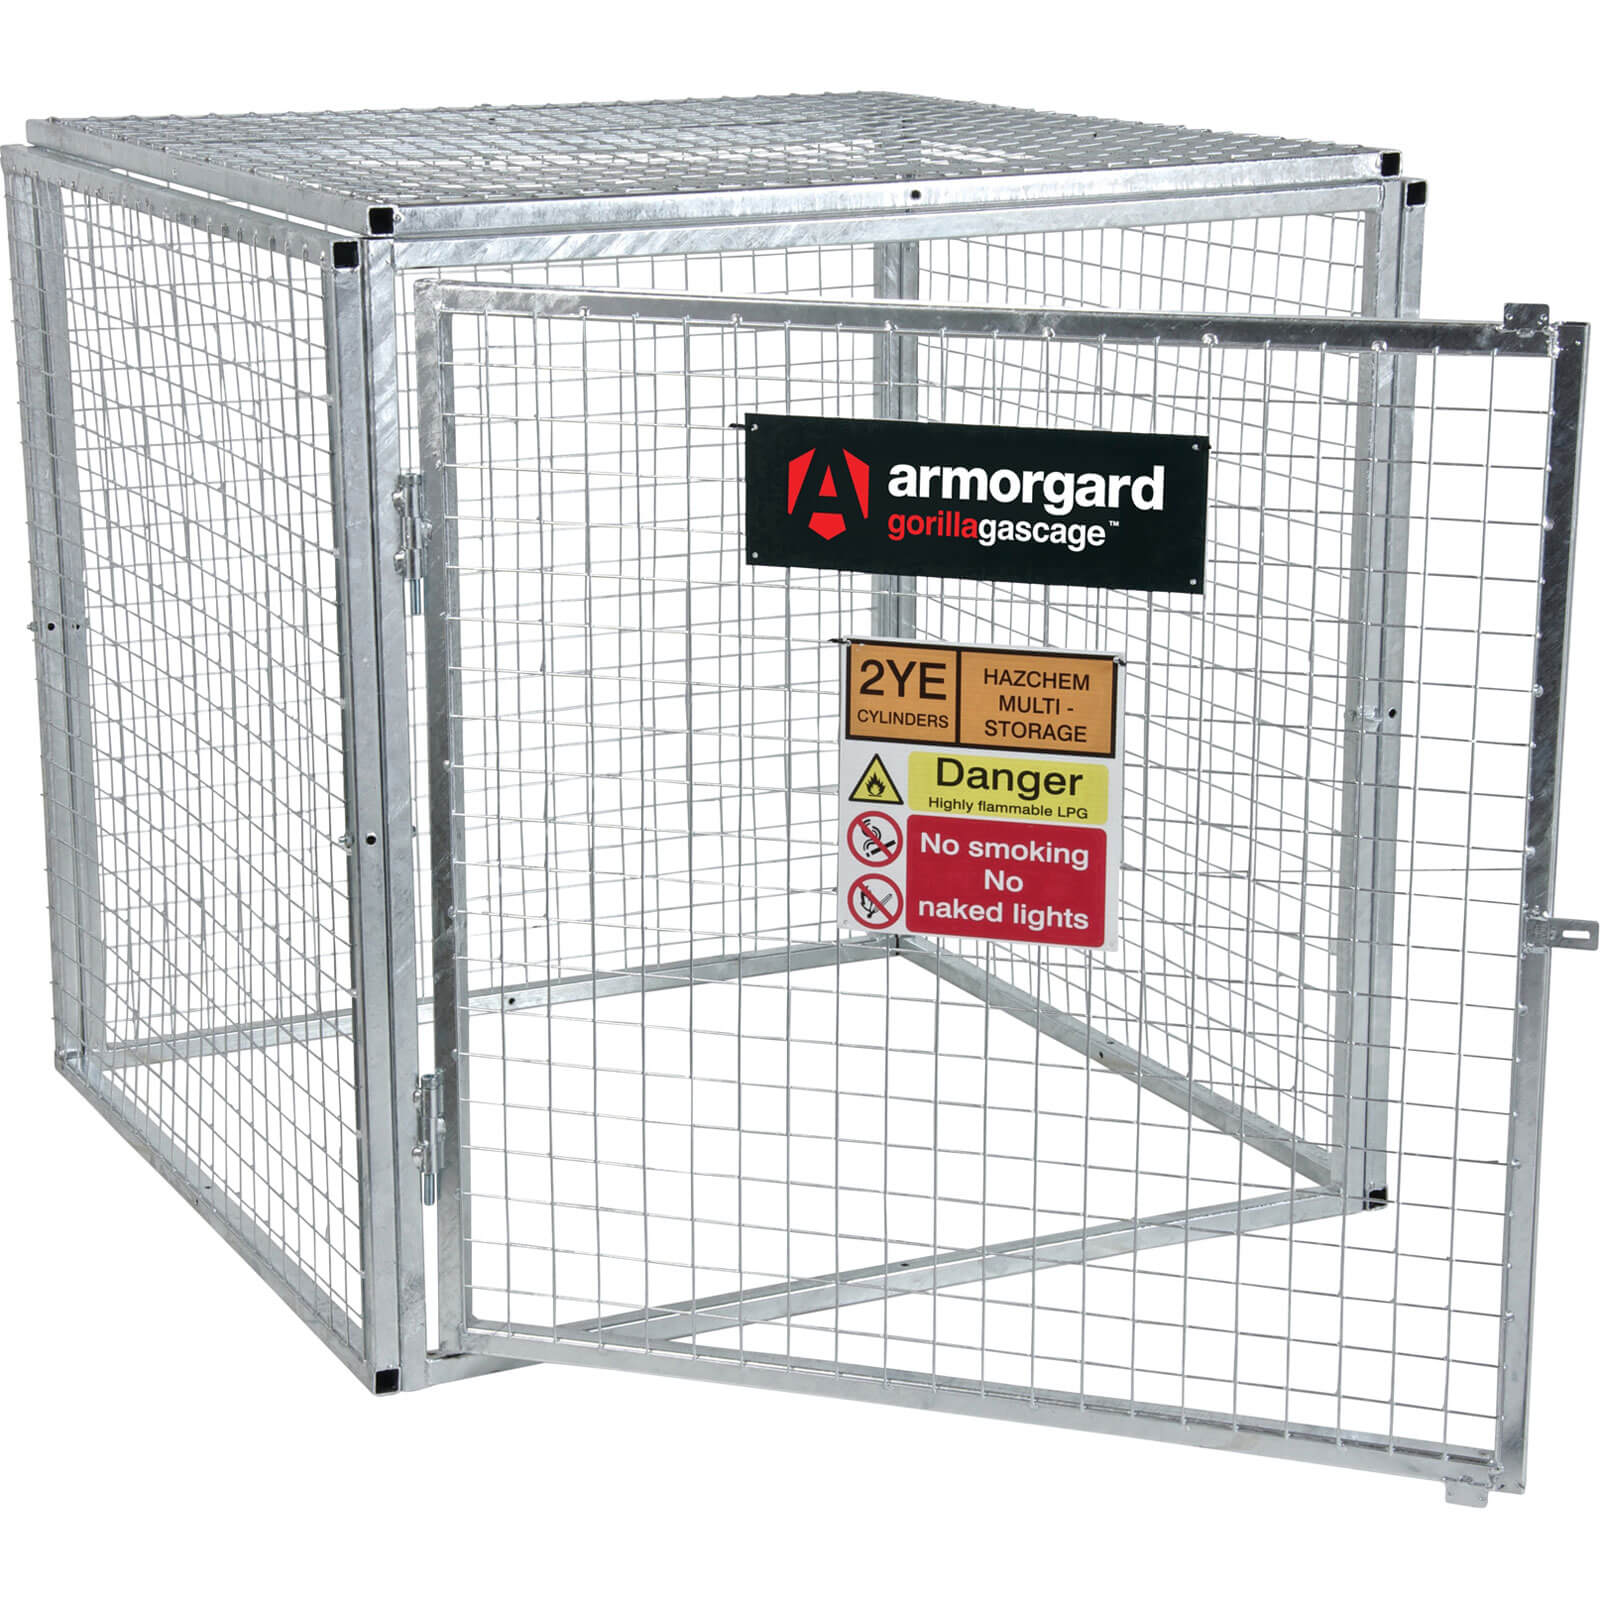 Armorgard Gorilla Bolt Together Gas Cylinder Cage 1200mm x 1200mm x 1200mm